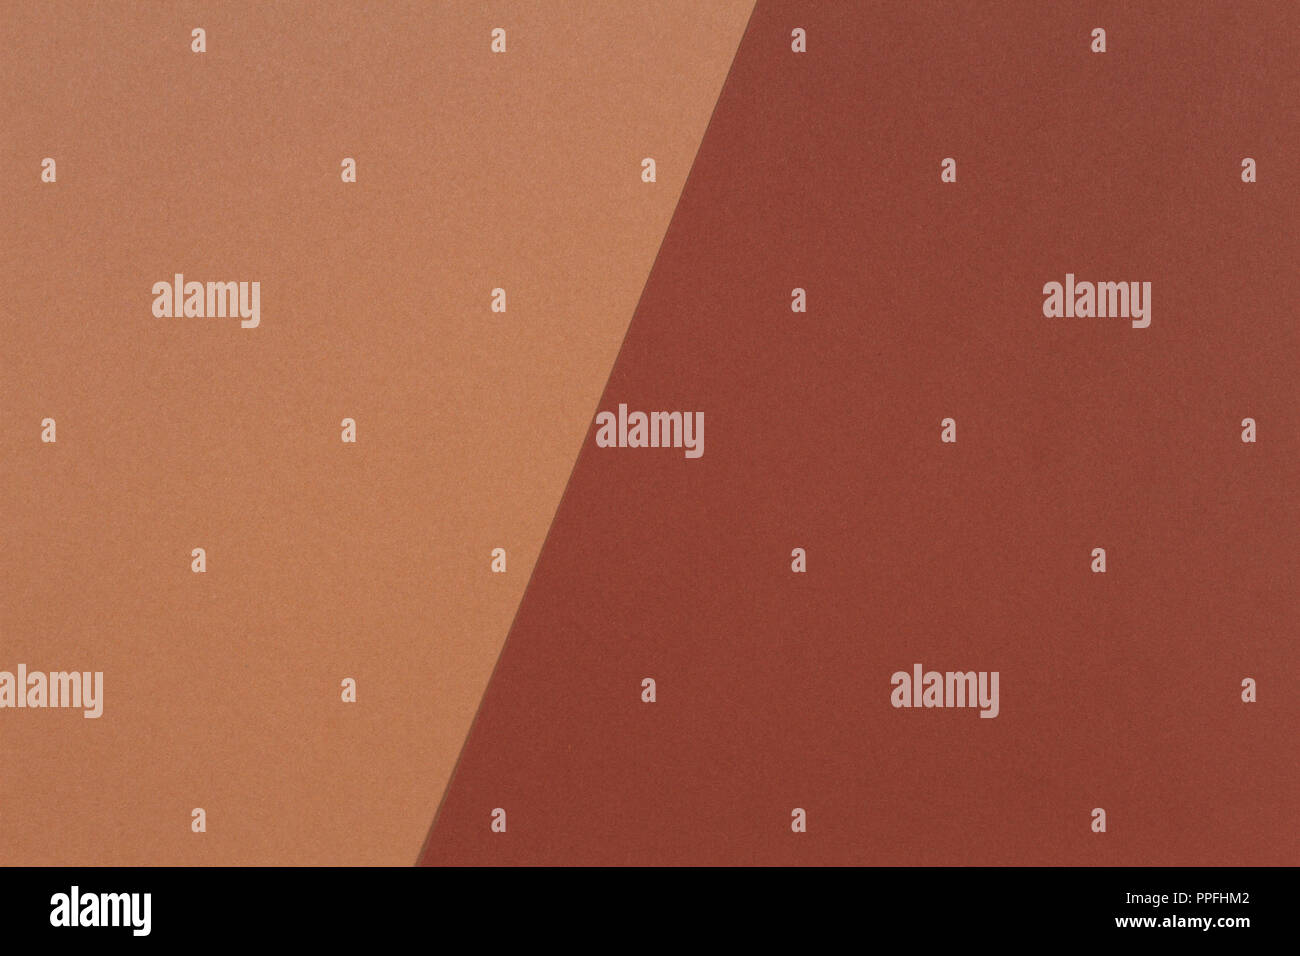 Color paper composition background with beige and brown tones - Stock Image